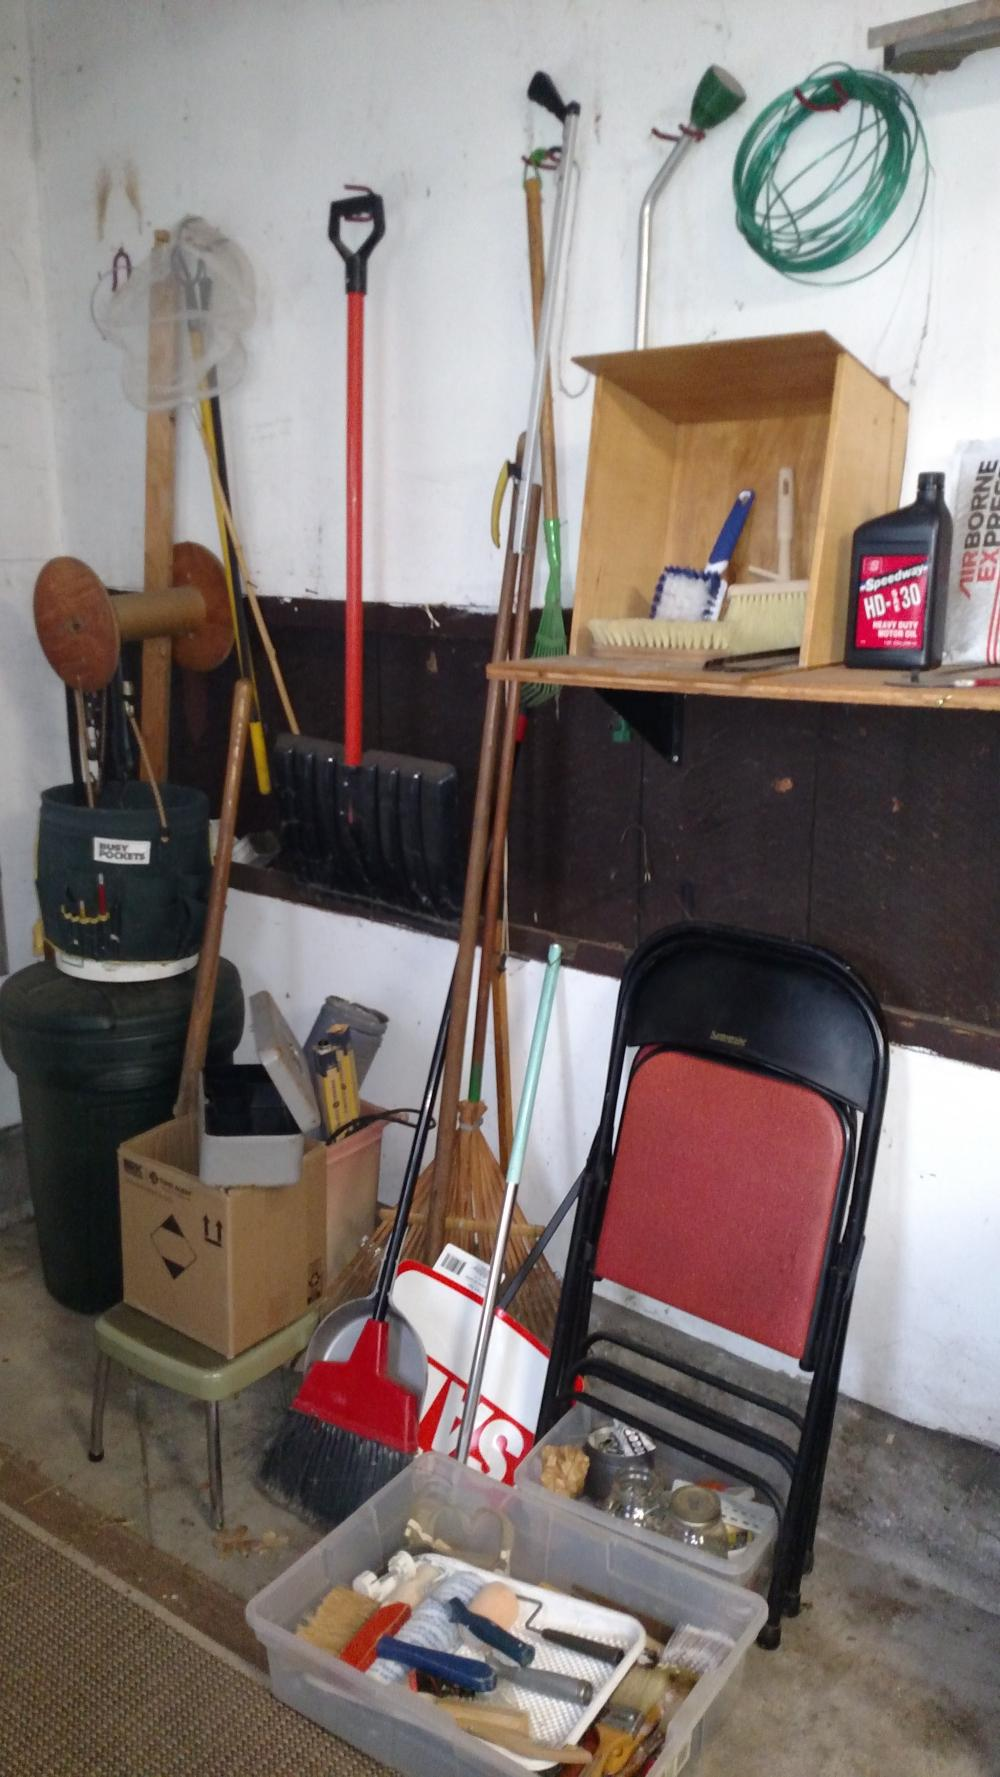 garage wall items-- paint brushes, rakes, broom, 2 card table chairs, bucket, trash can, misc joblot